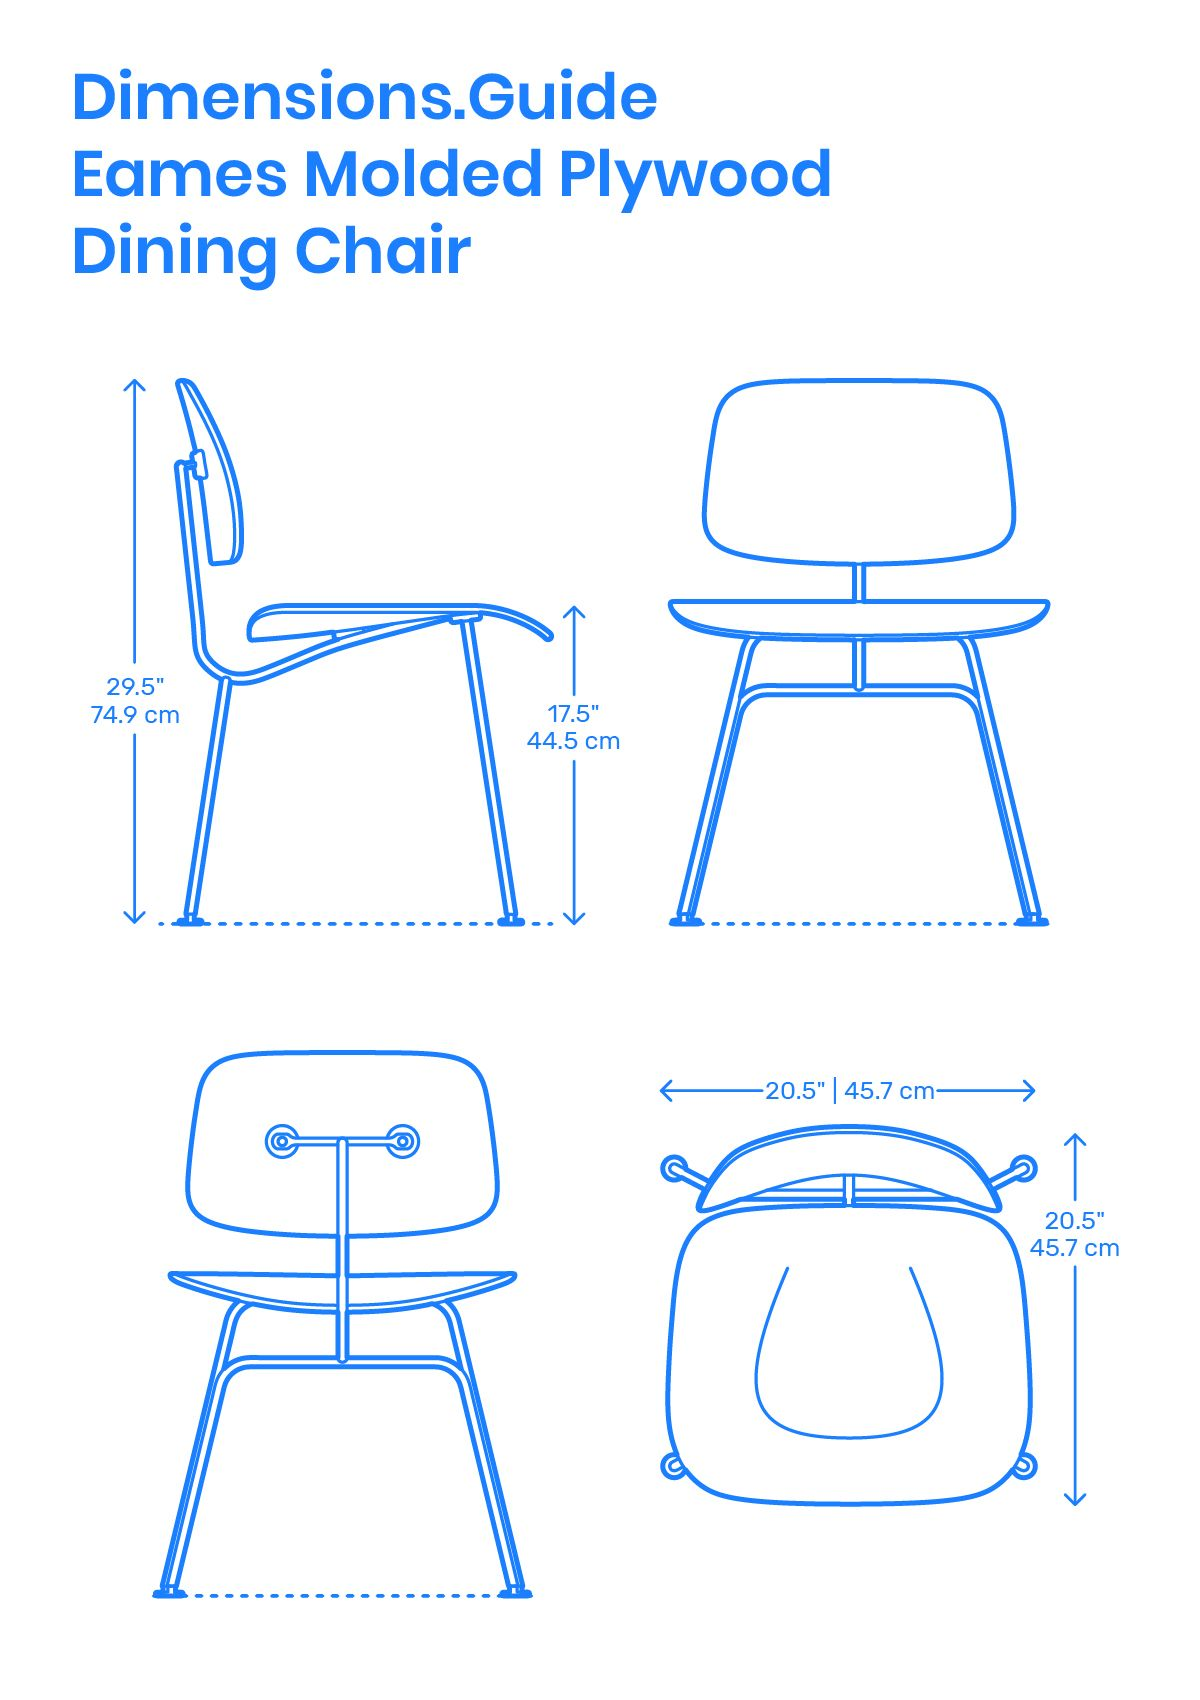 Pin By Lisianthus On Furniture Design In 2020 With Images Eames Molded Plywood Dining Chair Dining Chair Design Furniture Details Design